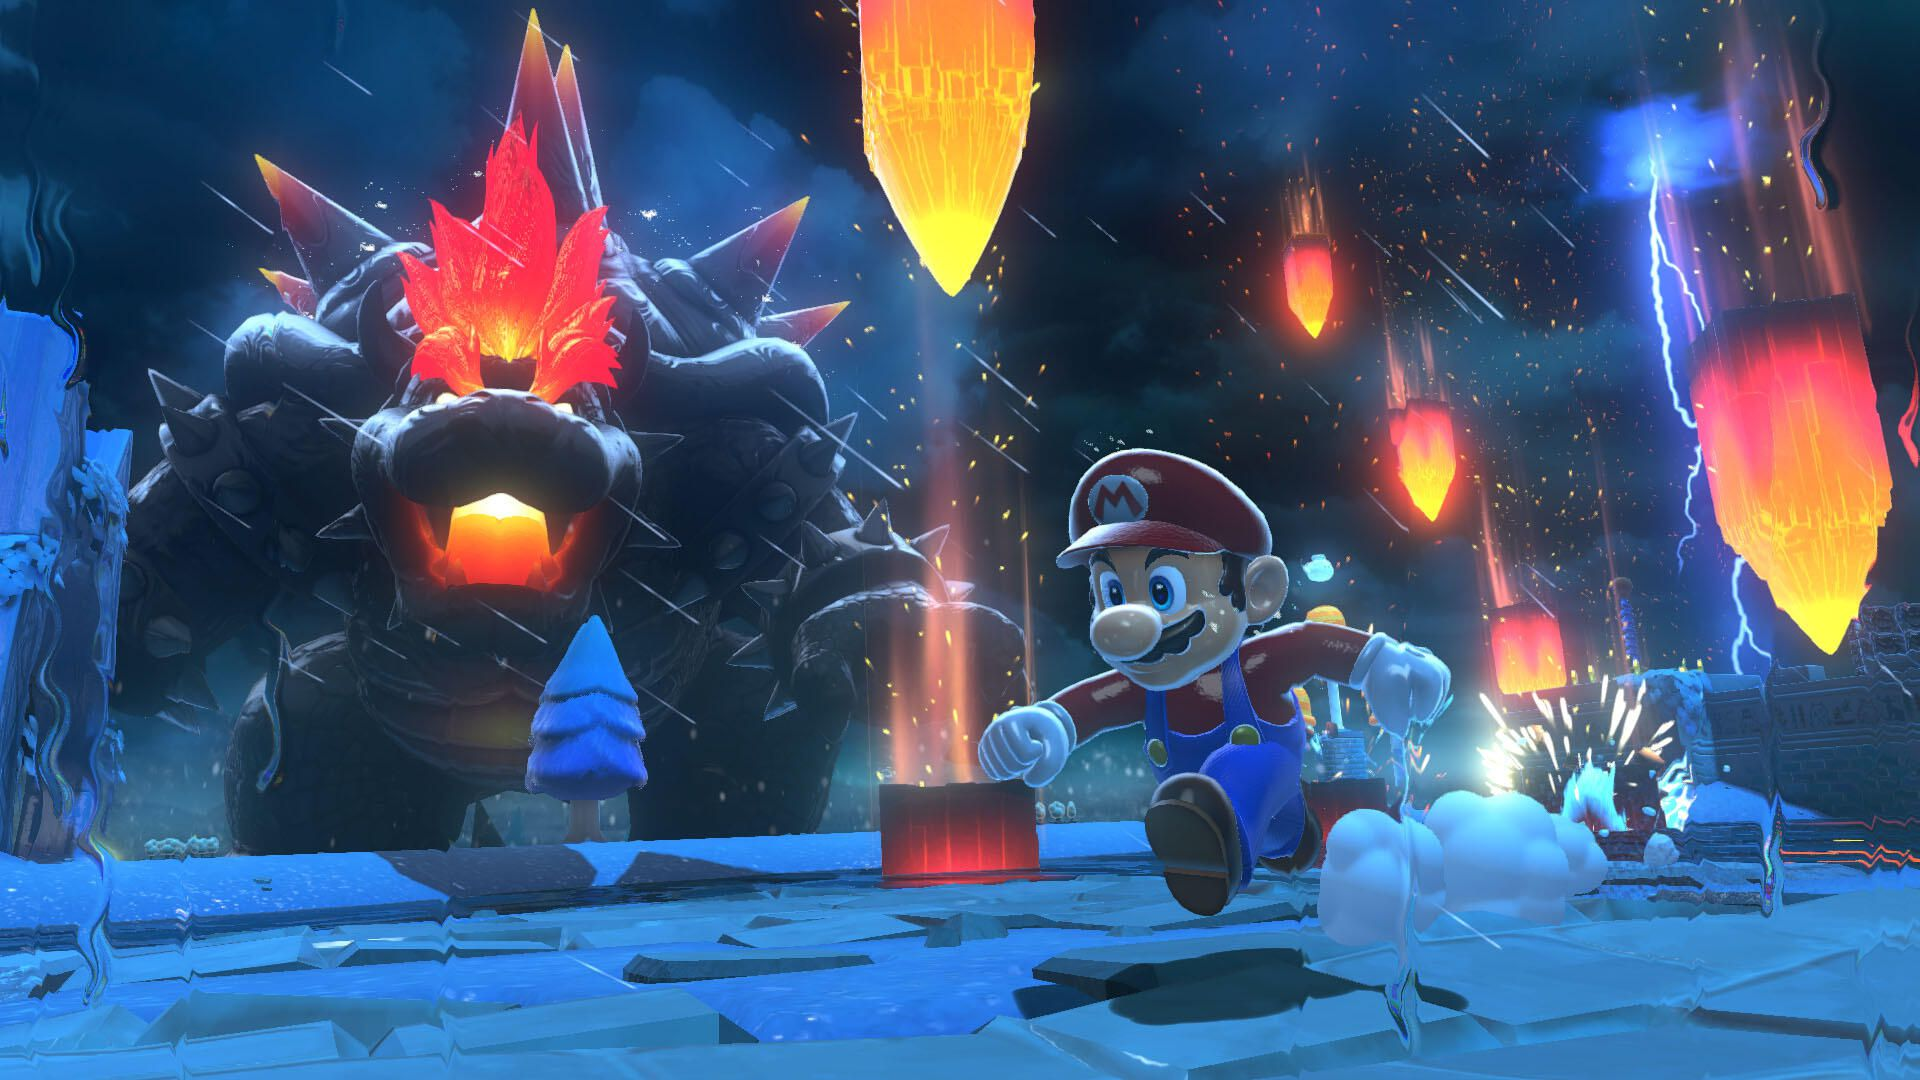 Giant Bowser debuts in Super Mario 3D World + Bowser's Fury trailer - CNET